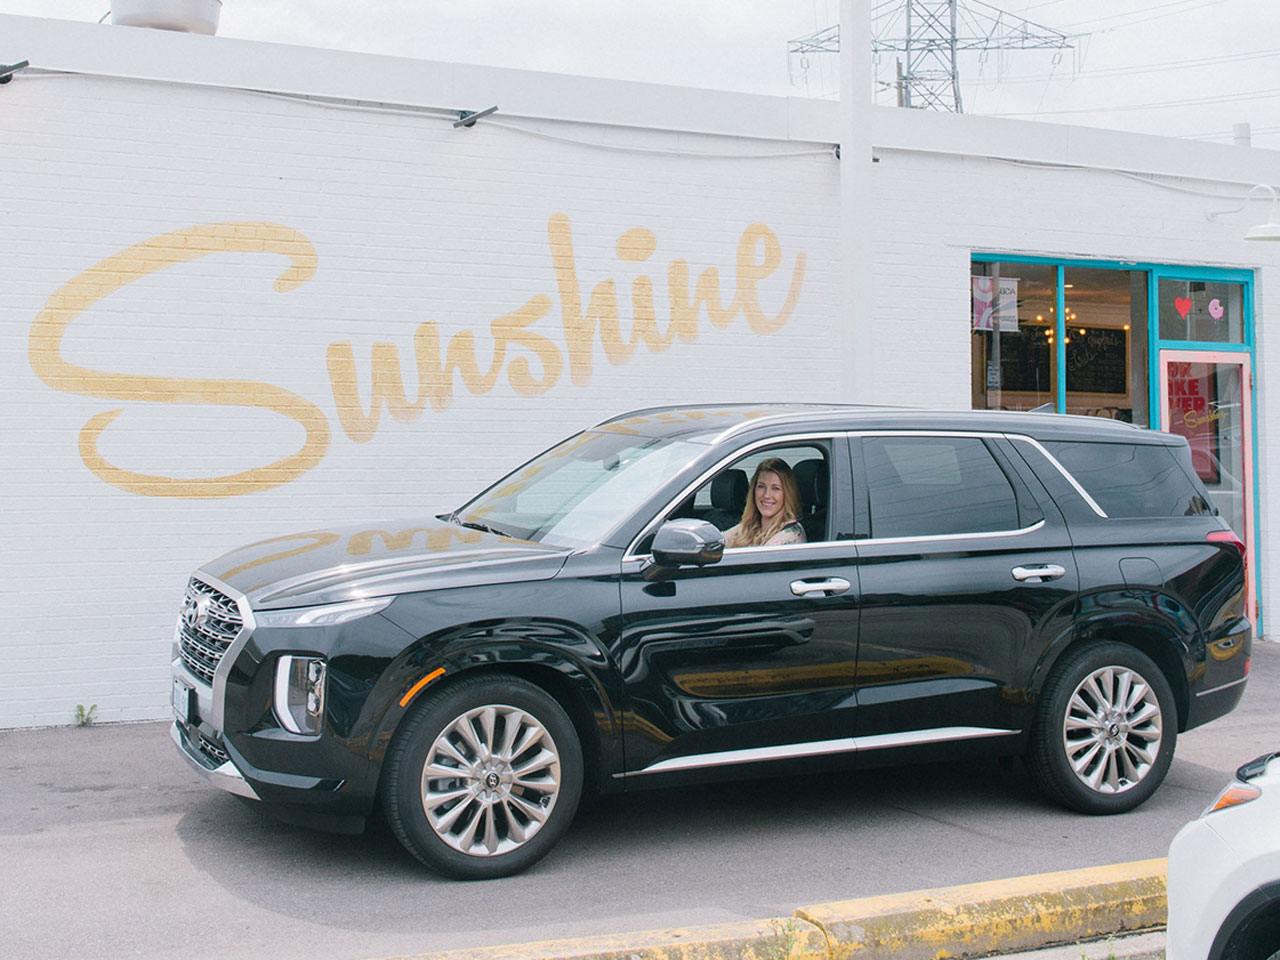 """Renee in Hyundai Palisade outside a building that says """"sunshine"""" on the wall"""